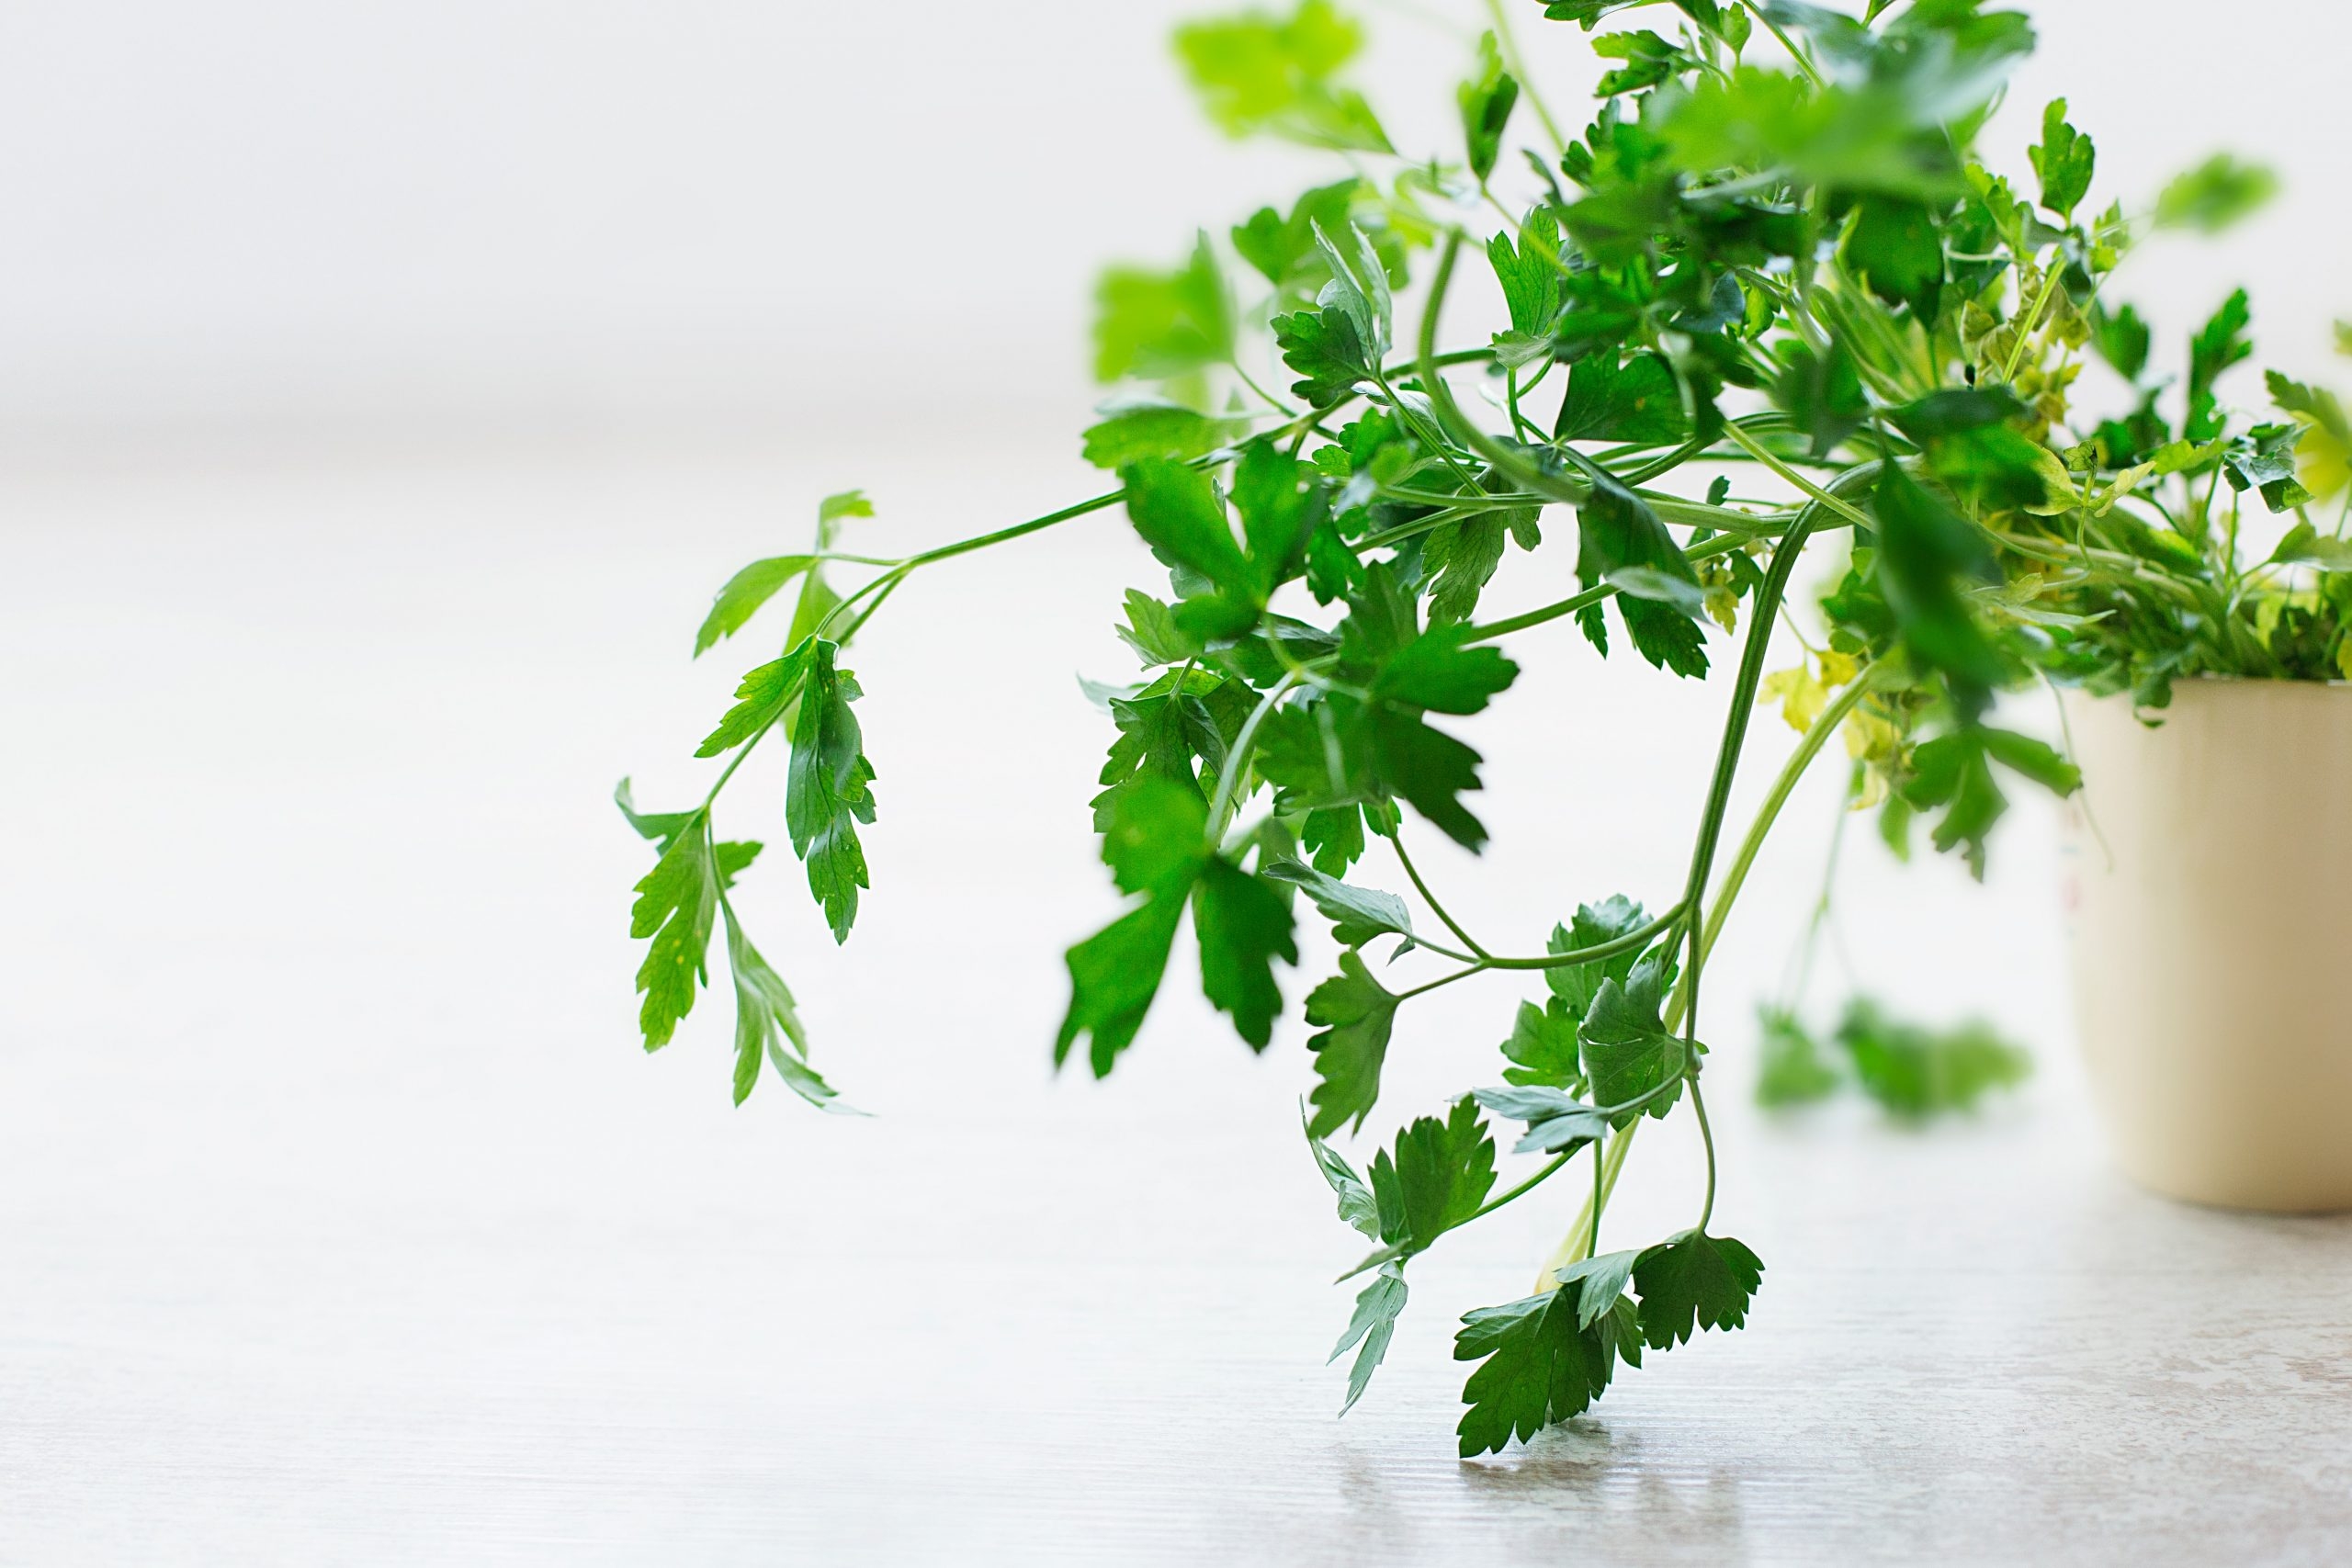 deodorize internally with plenty of foods high in chlorophyll, fiber and water